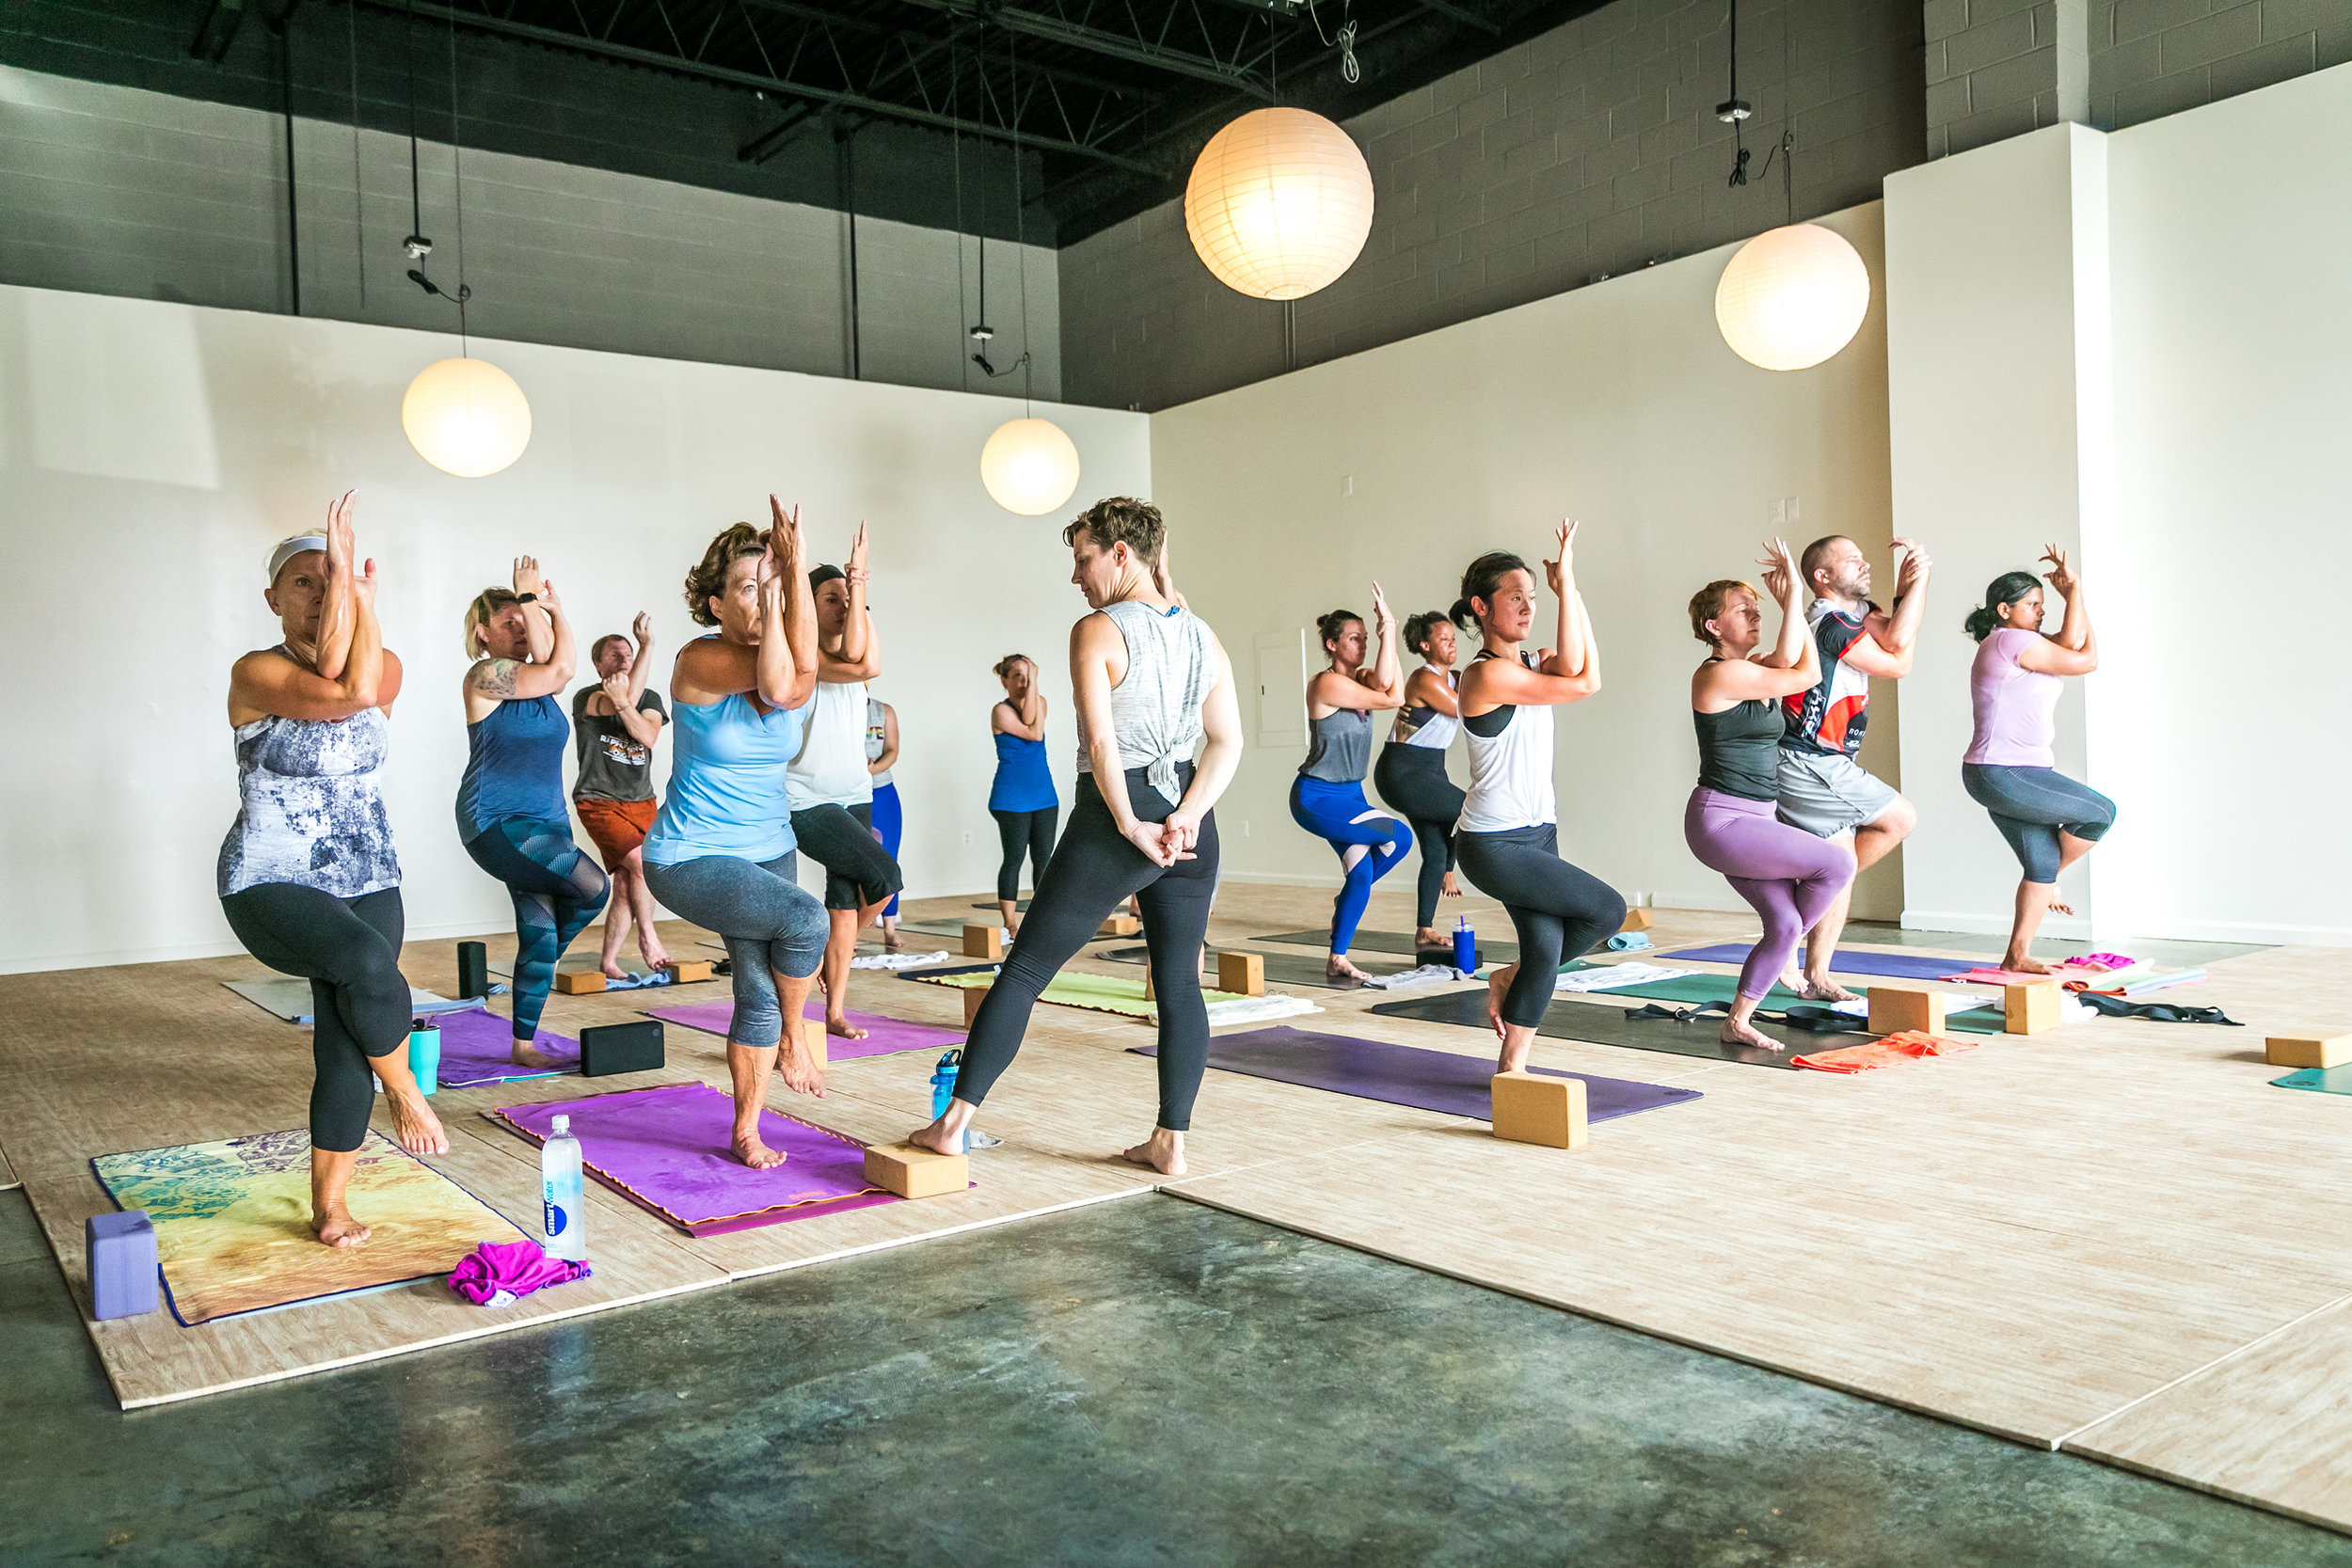 Whether you are an experienced practitioner or totally new to yoga Homegrown Power Yoga welcomes you. Our yoga classes are for everybody.